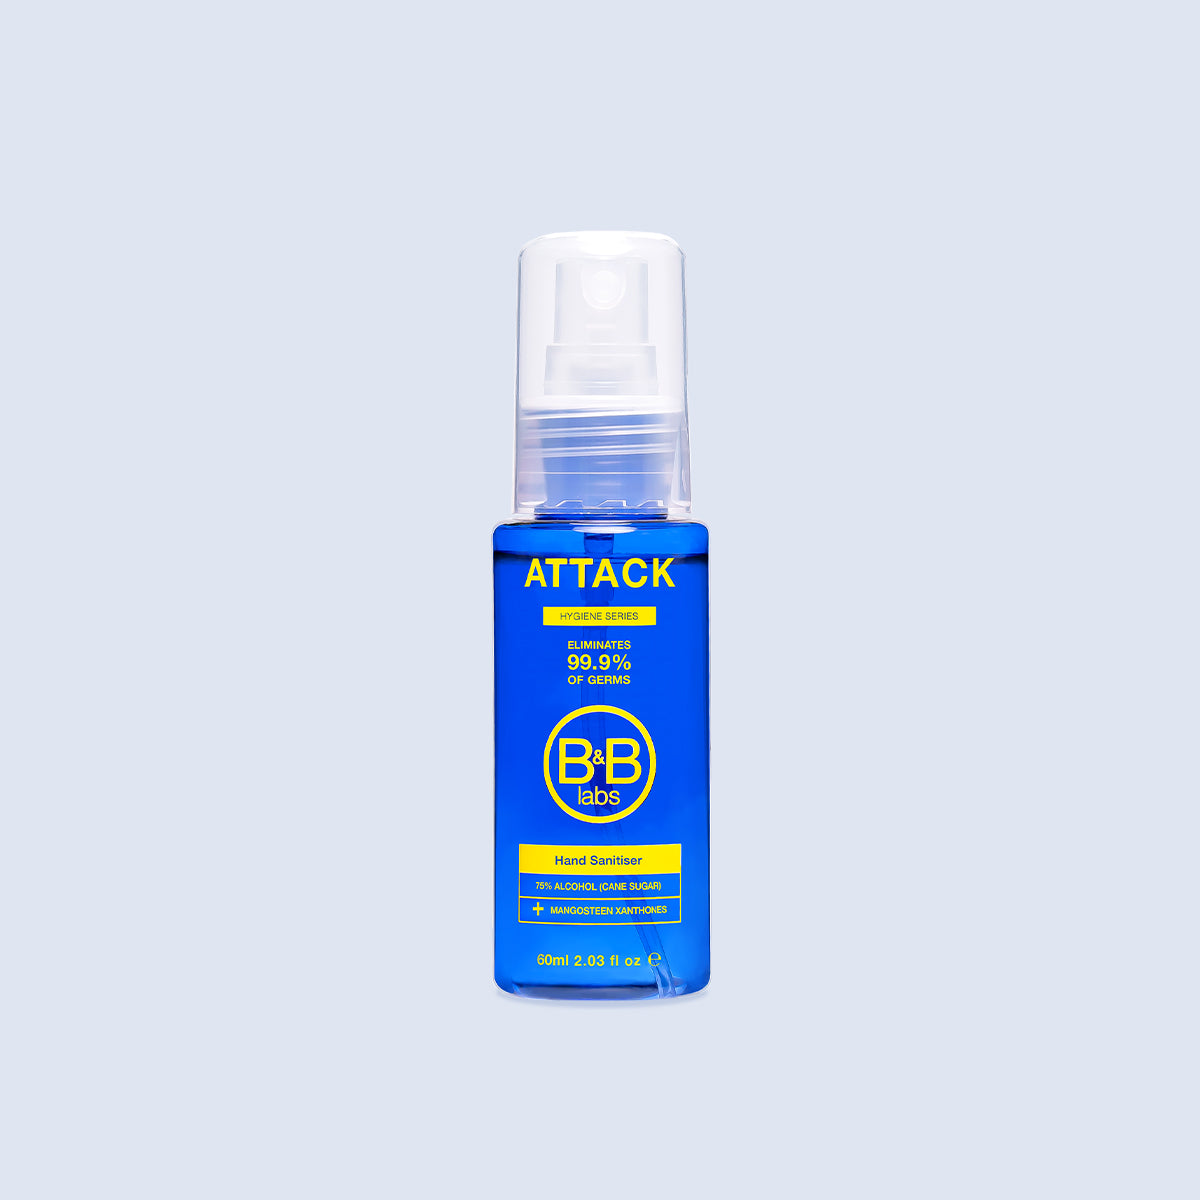 ATTACK – Hand Sanitiser with Microbiome